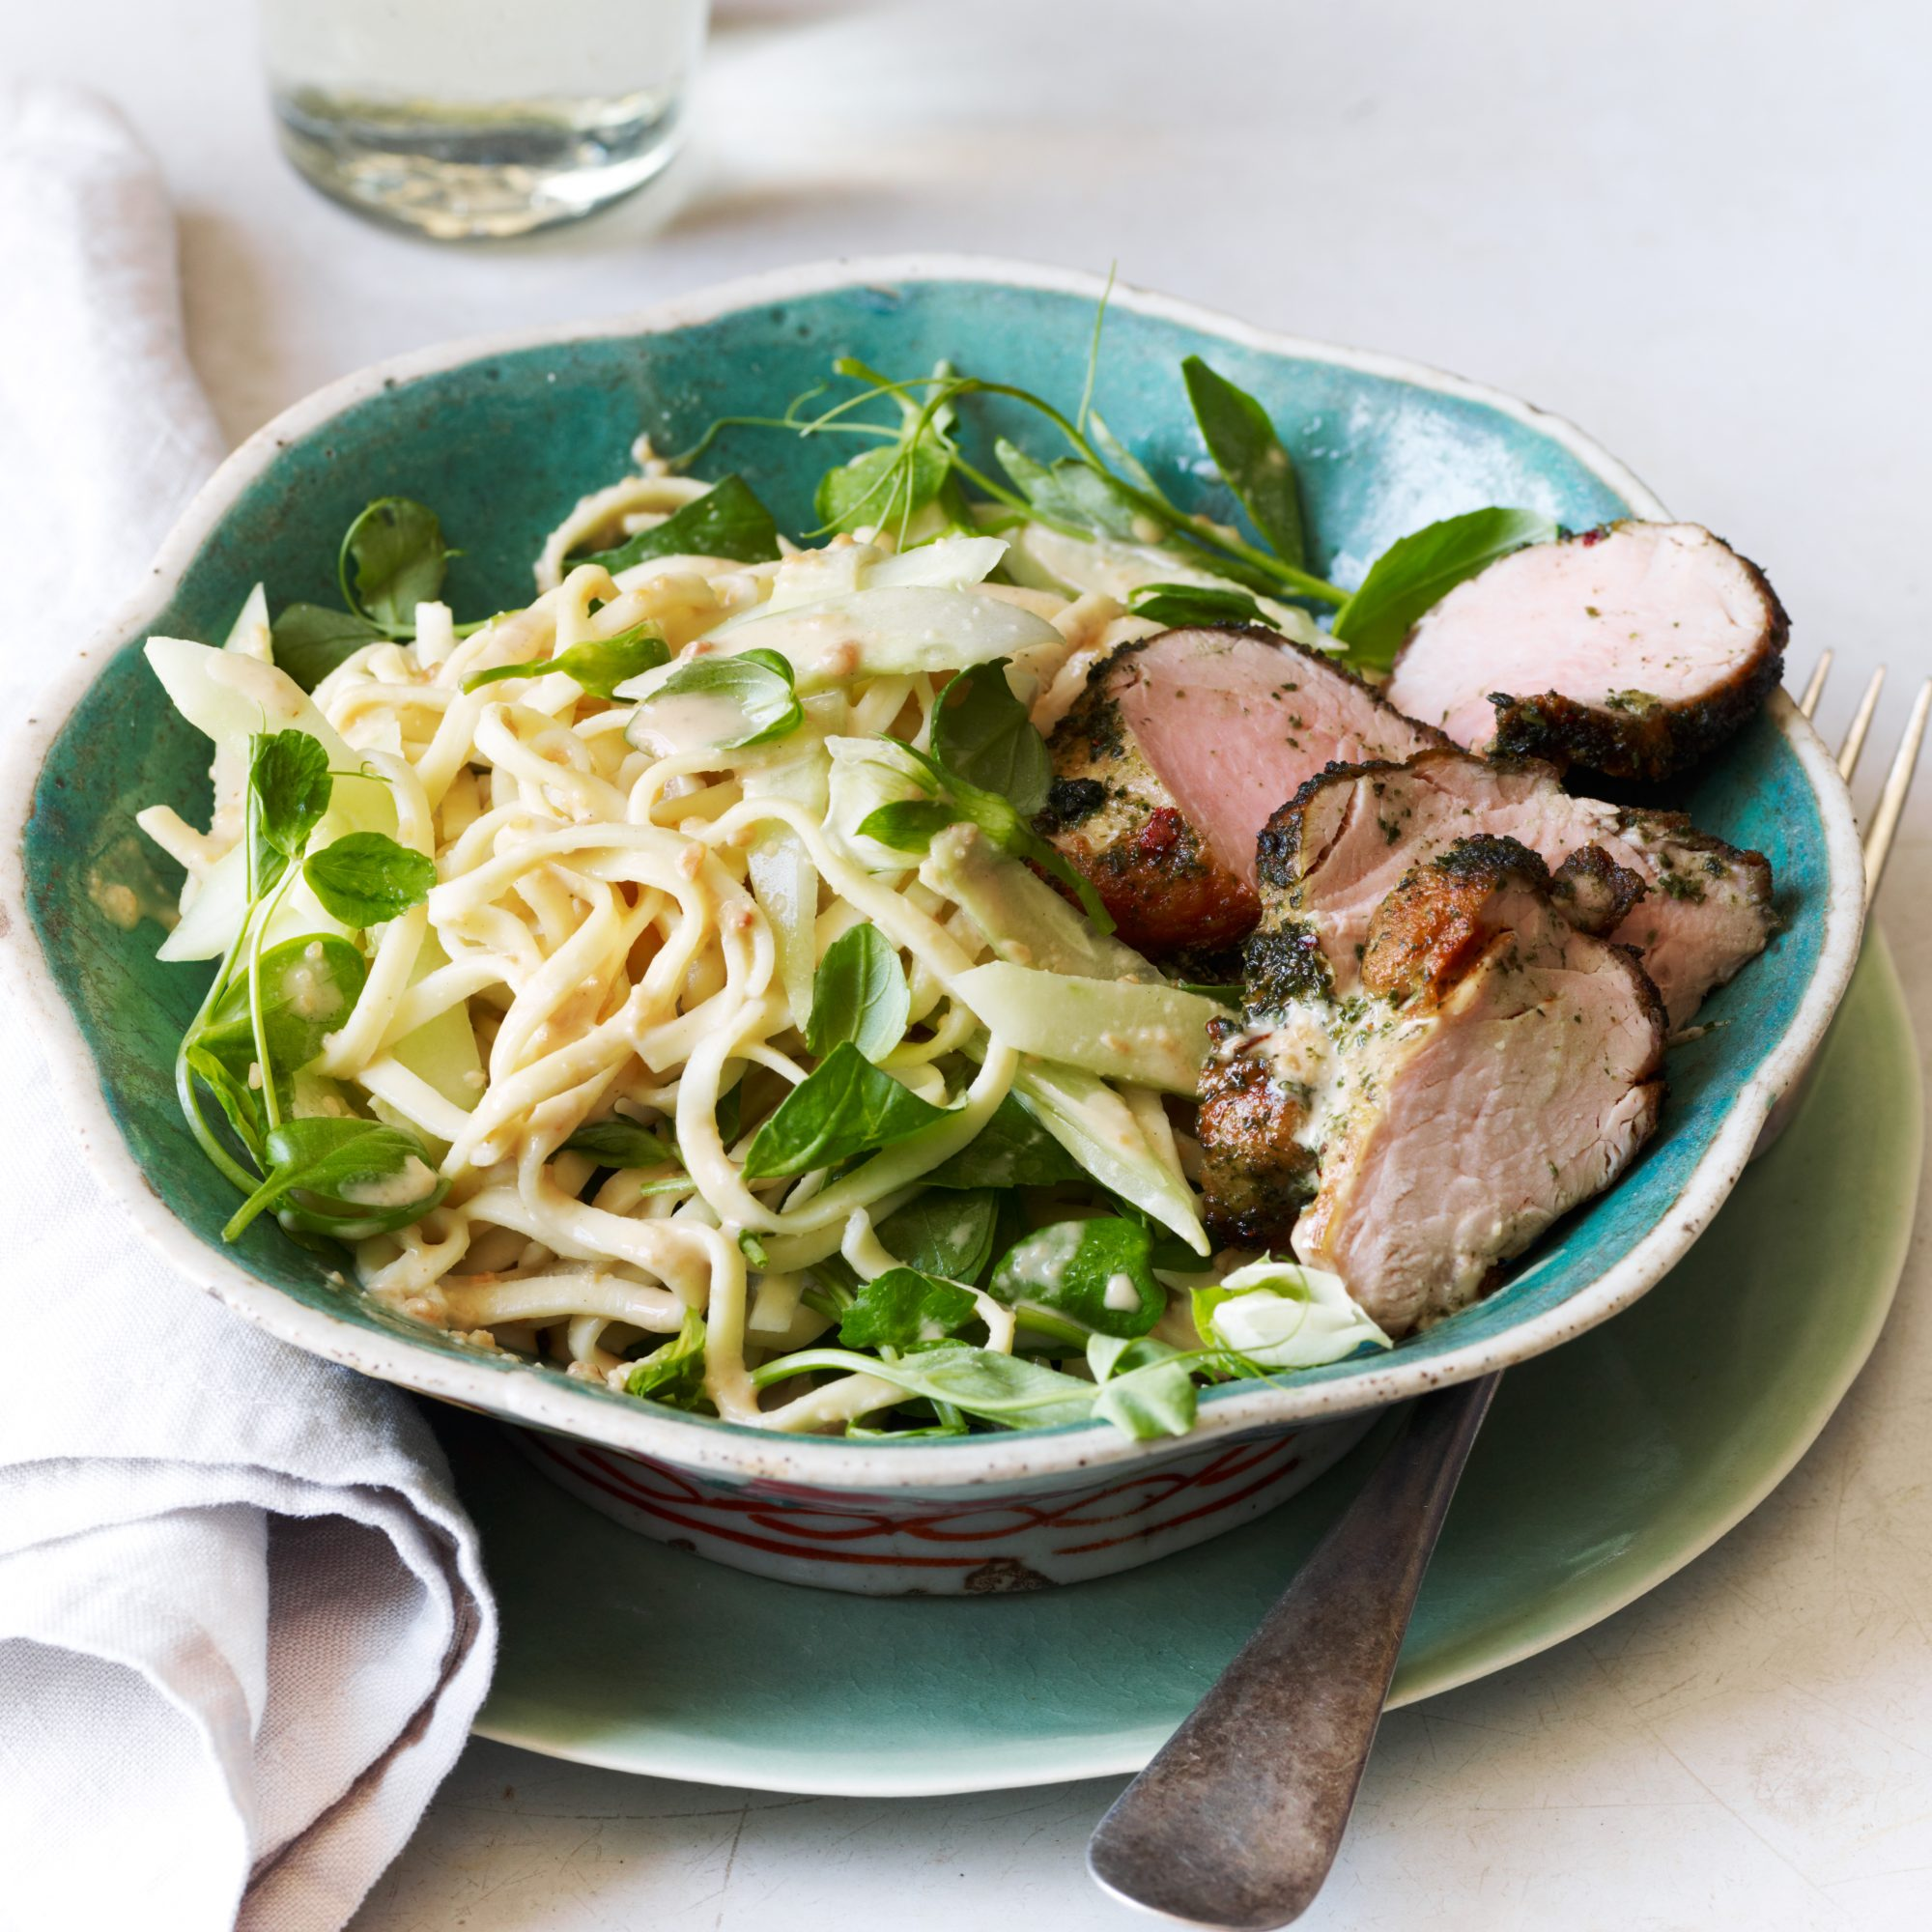 Cold pork salad recipe